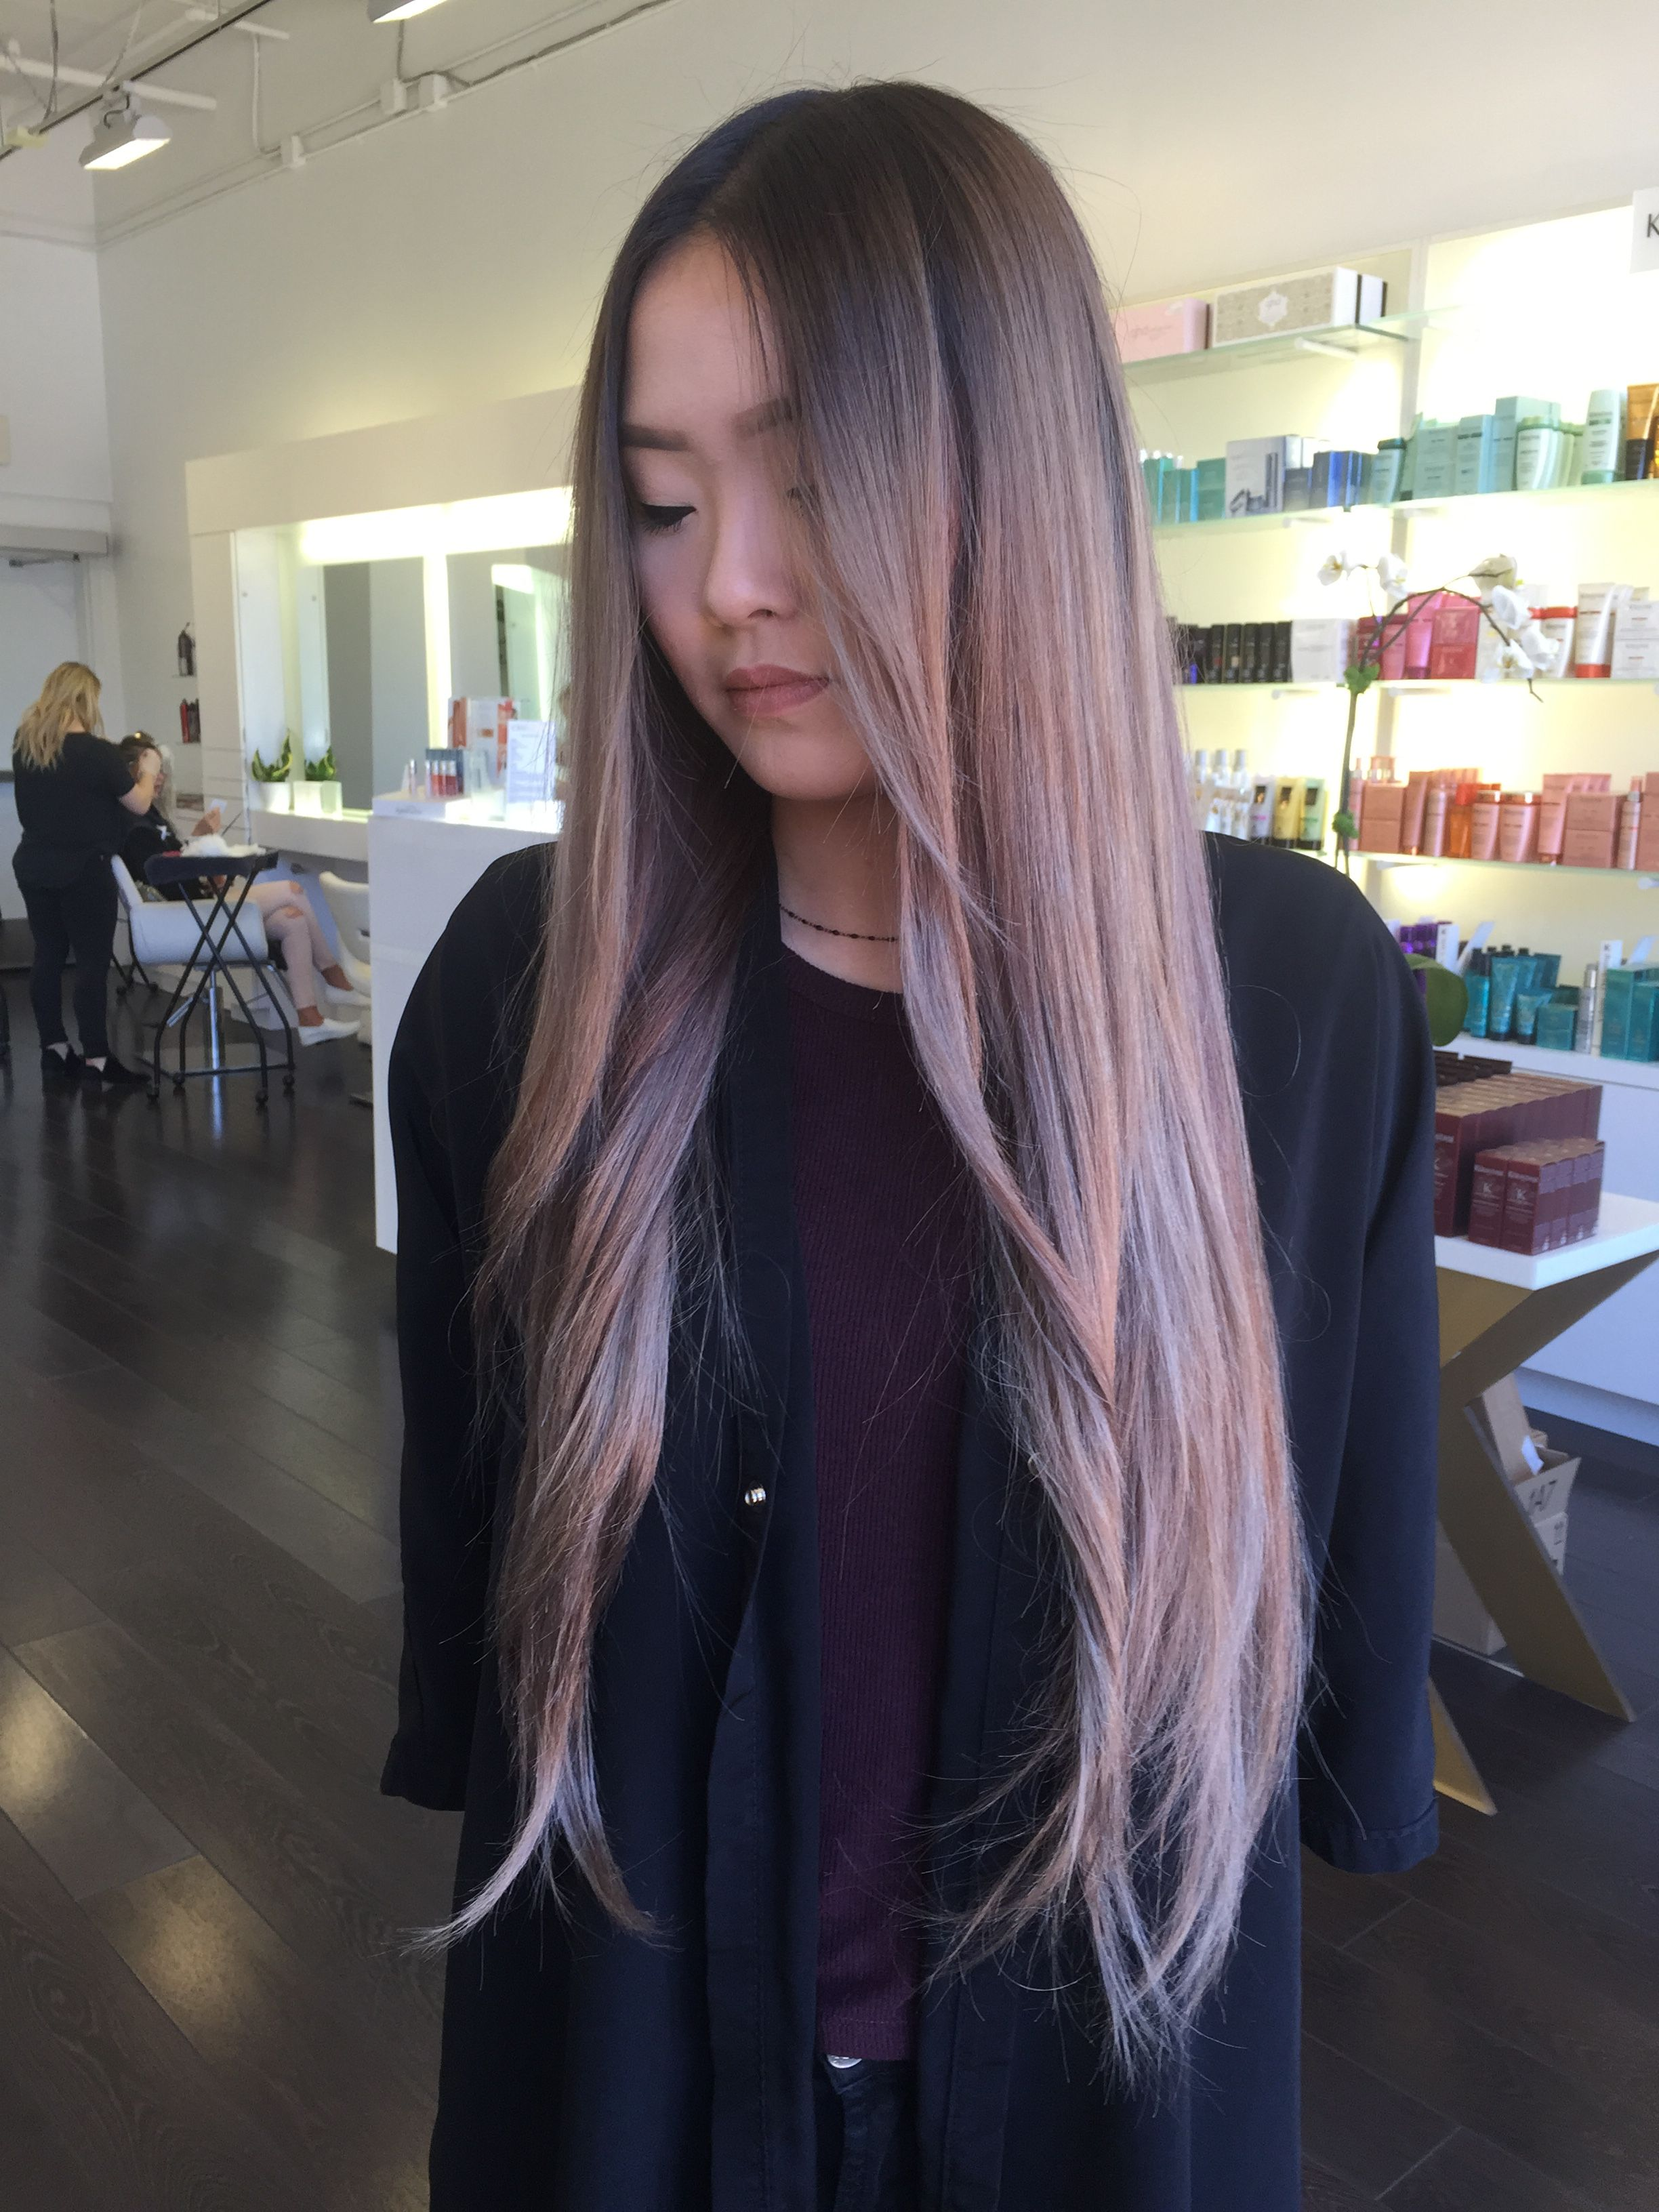 Asian hair colors Hair Styles Shapes & Colors